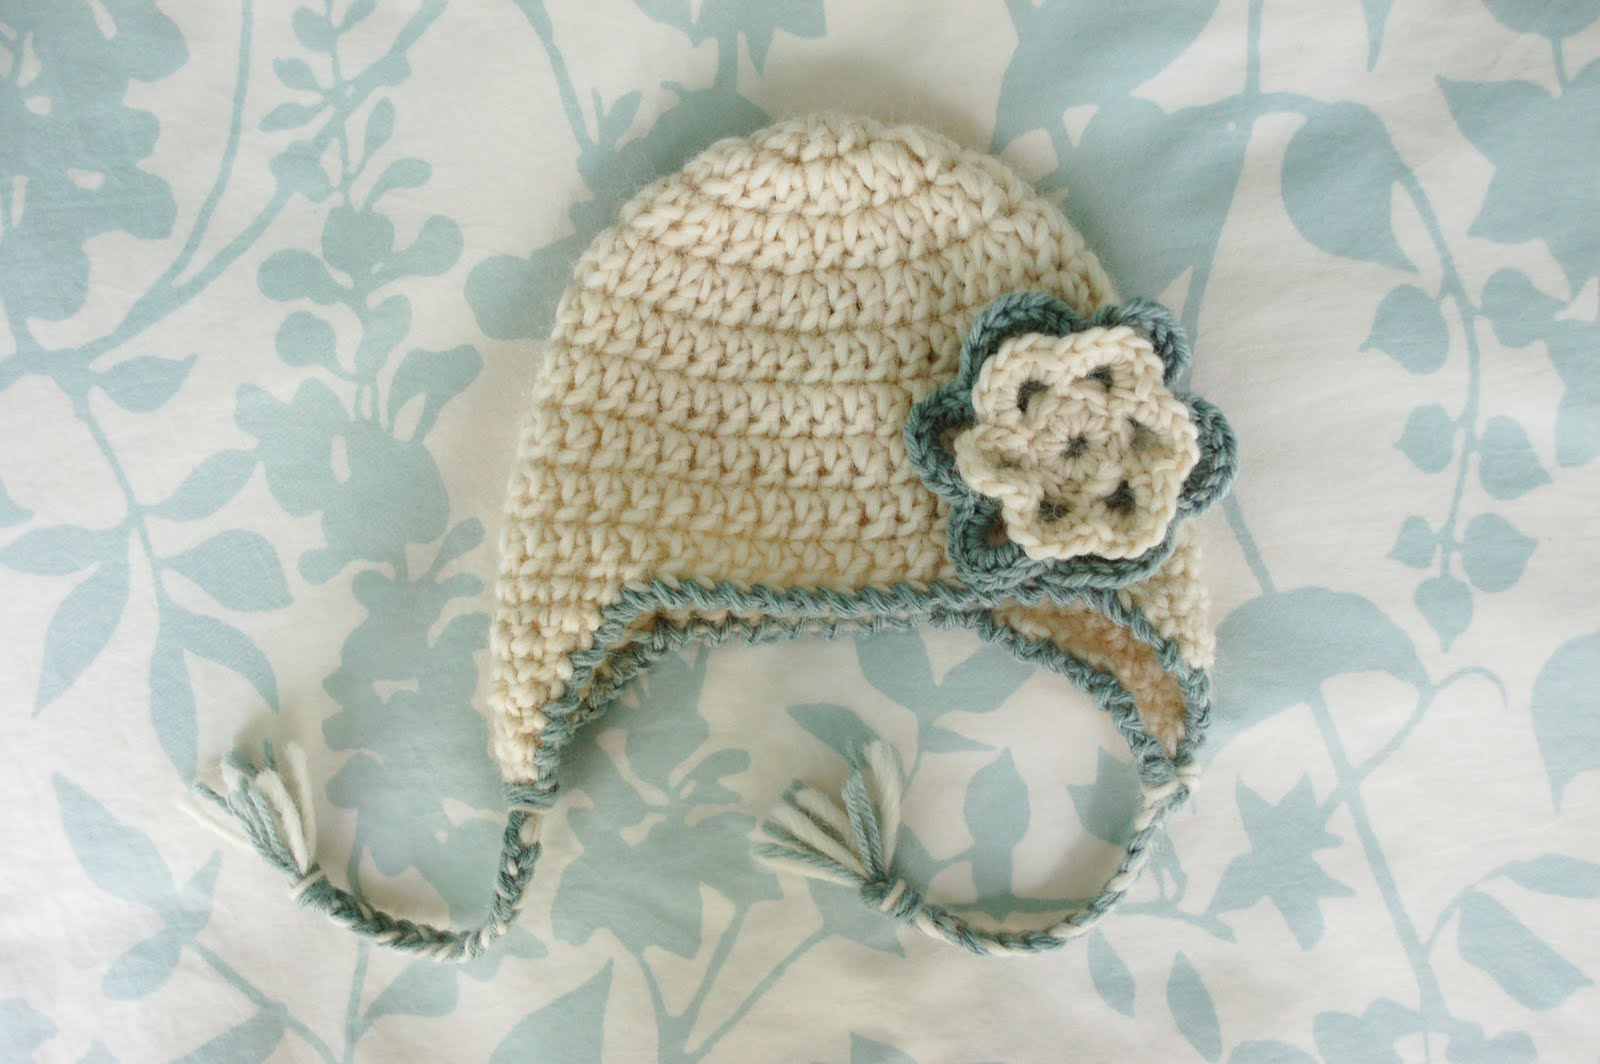 Free Crochet Pattern Toddler Earflap Hat : Alli Crafts: Free Pattern: Baby Earflap Hat - Newborn